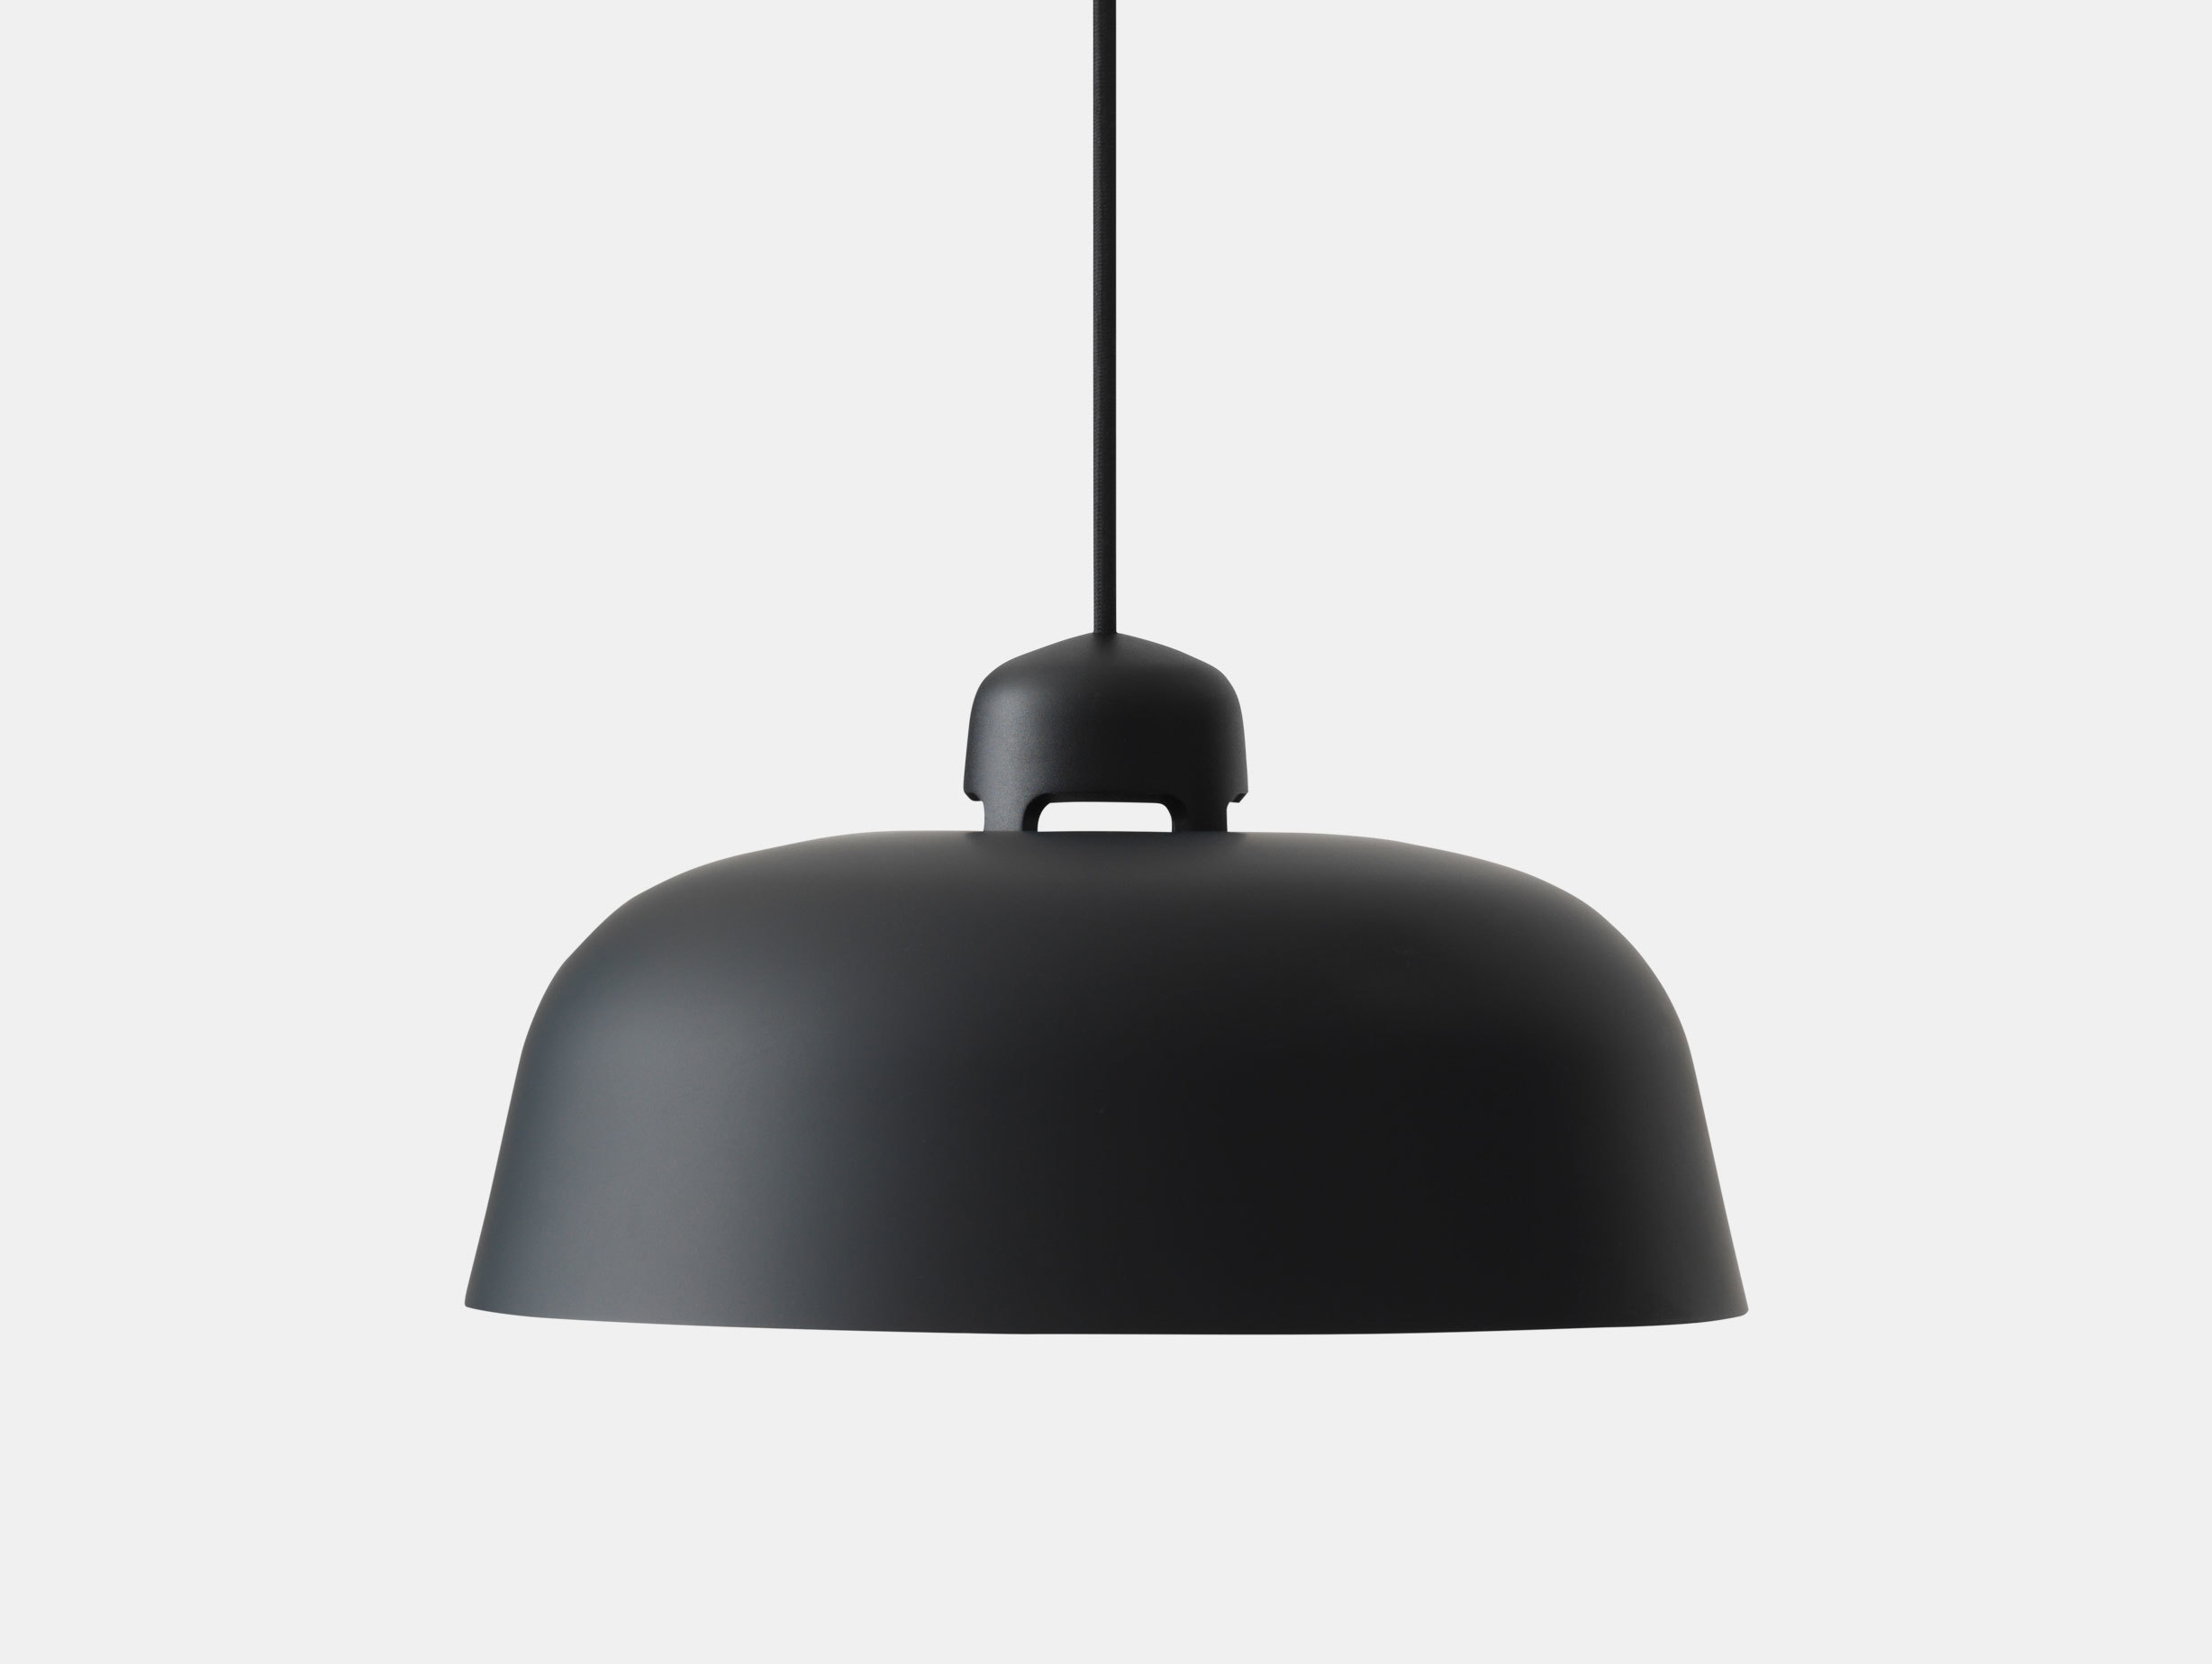 Wastberg W162 Dalston Pendant Light Black Black Sam Hecht Kim Colin